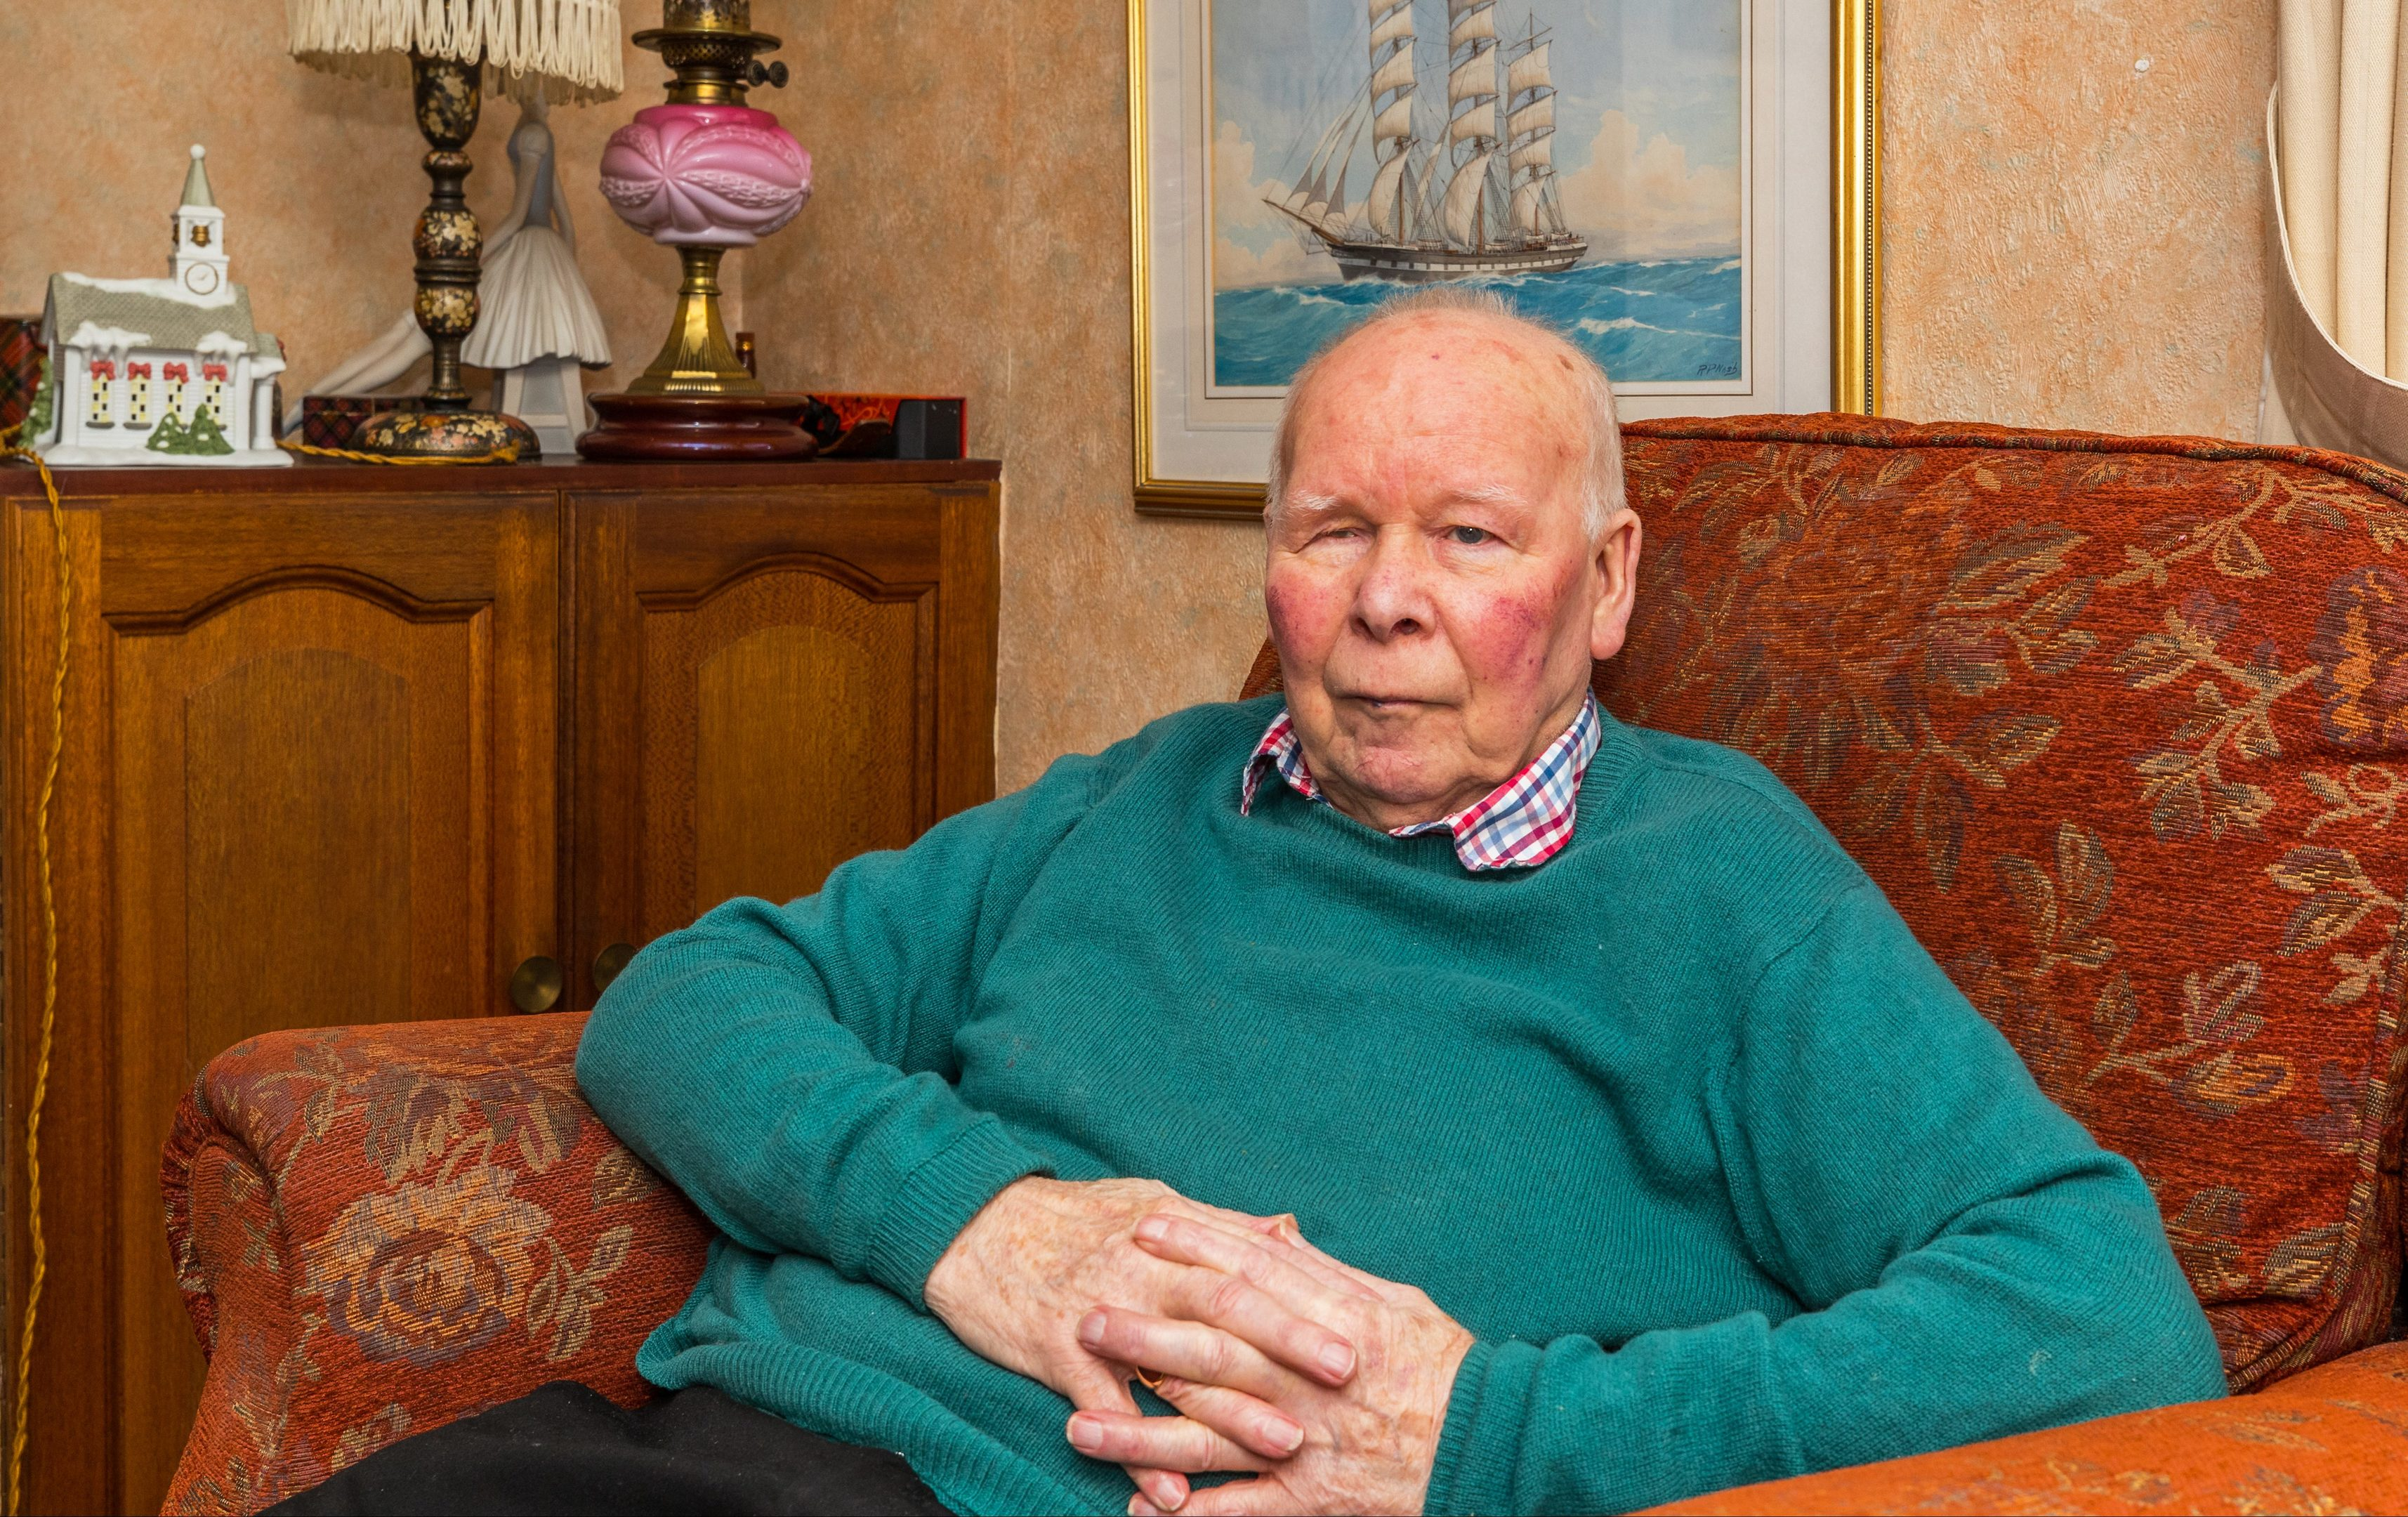 John Penman was devastated to find that his prized collection of watches had been stolen